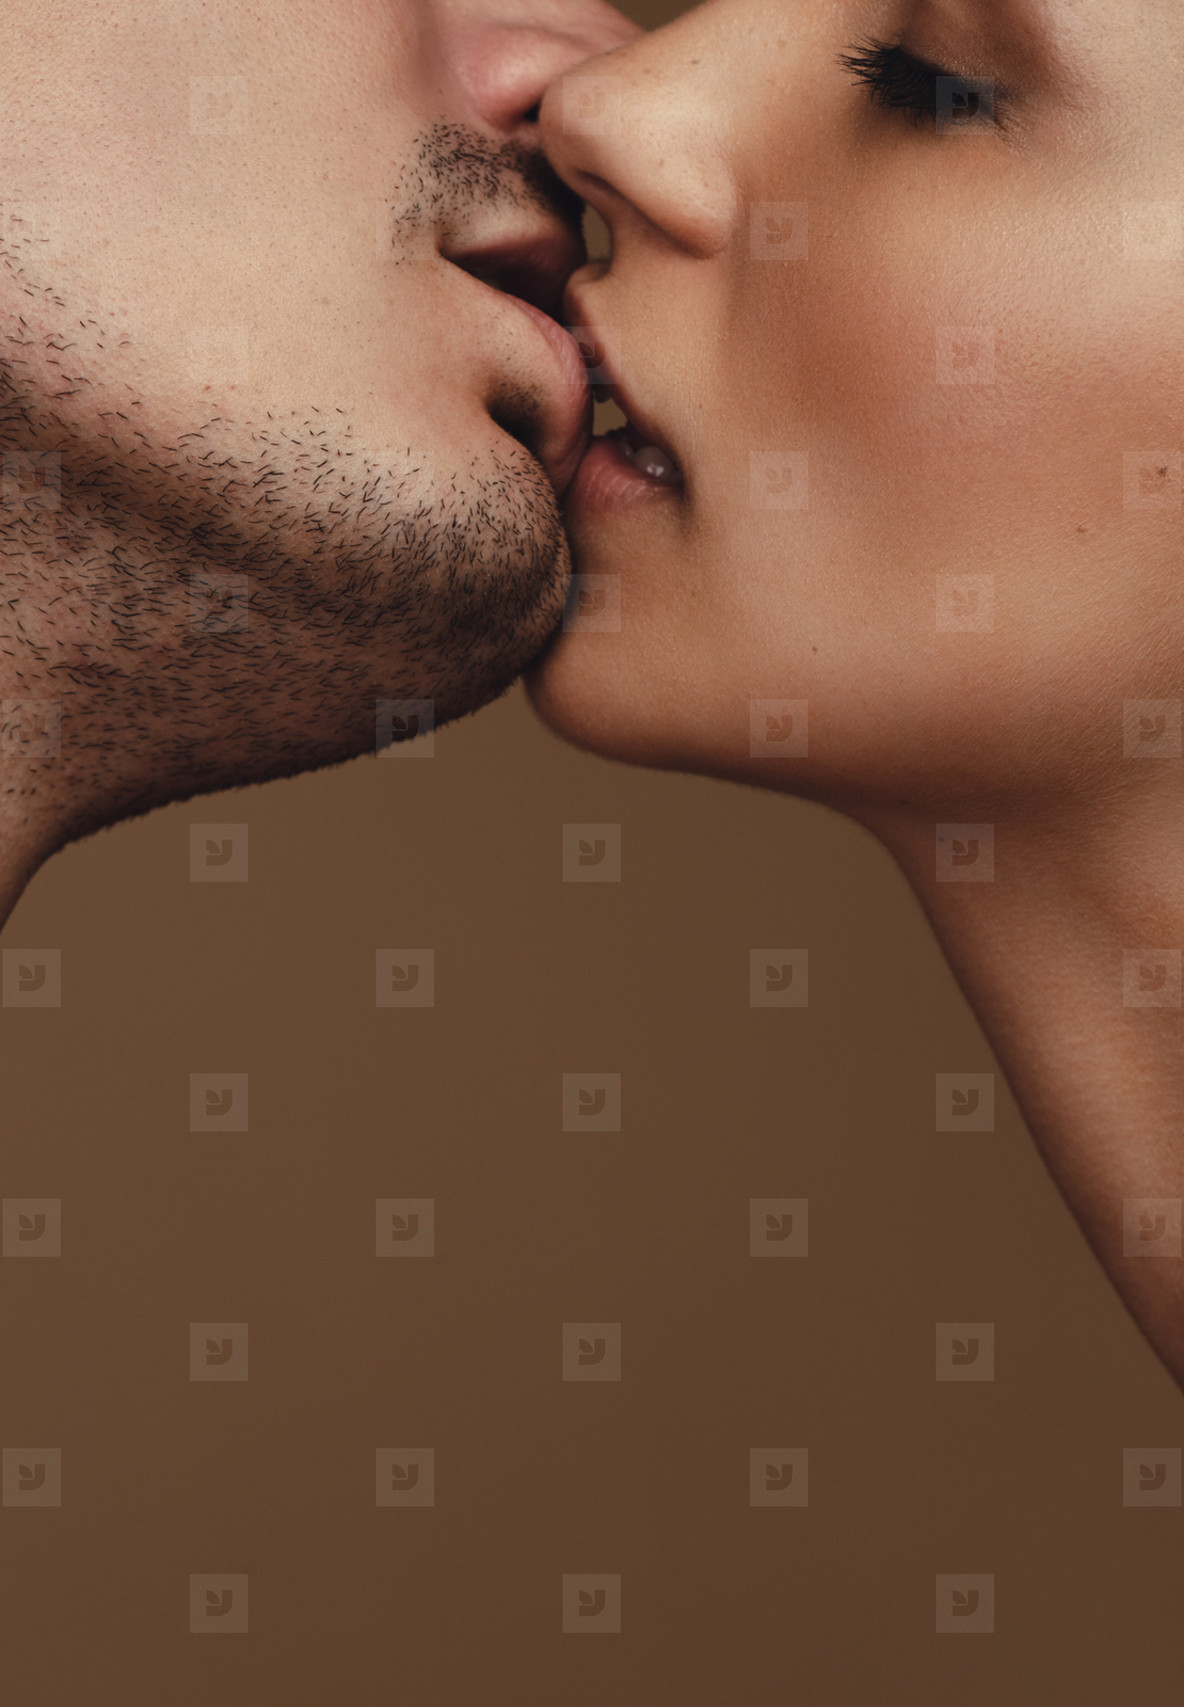 Couple kissing each other passionately